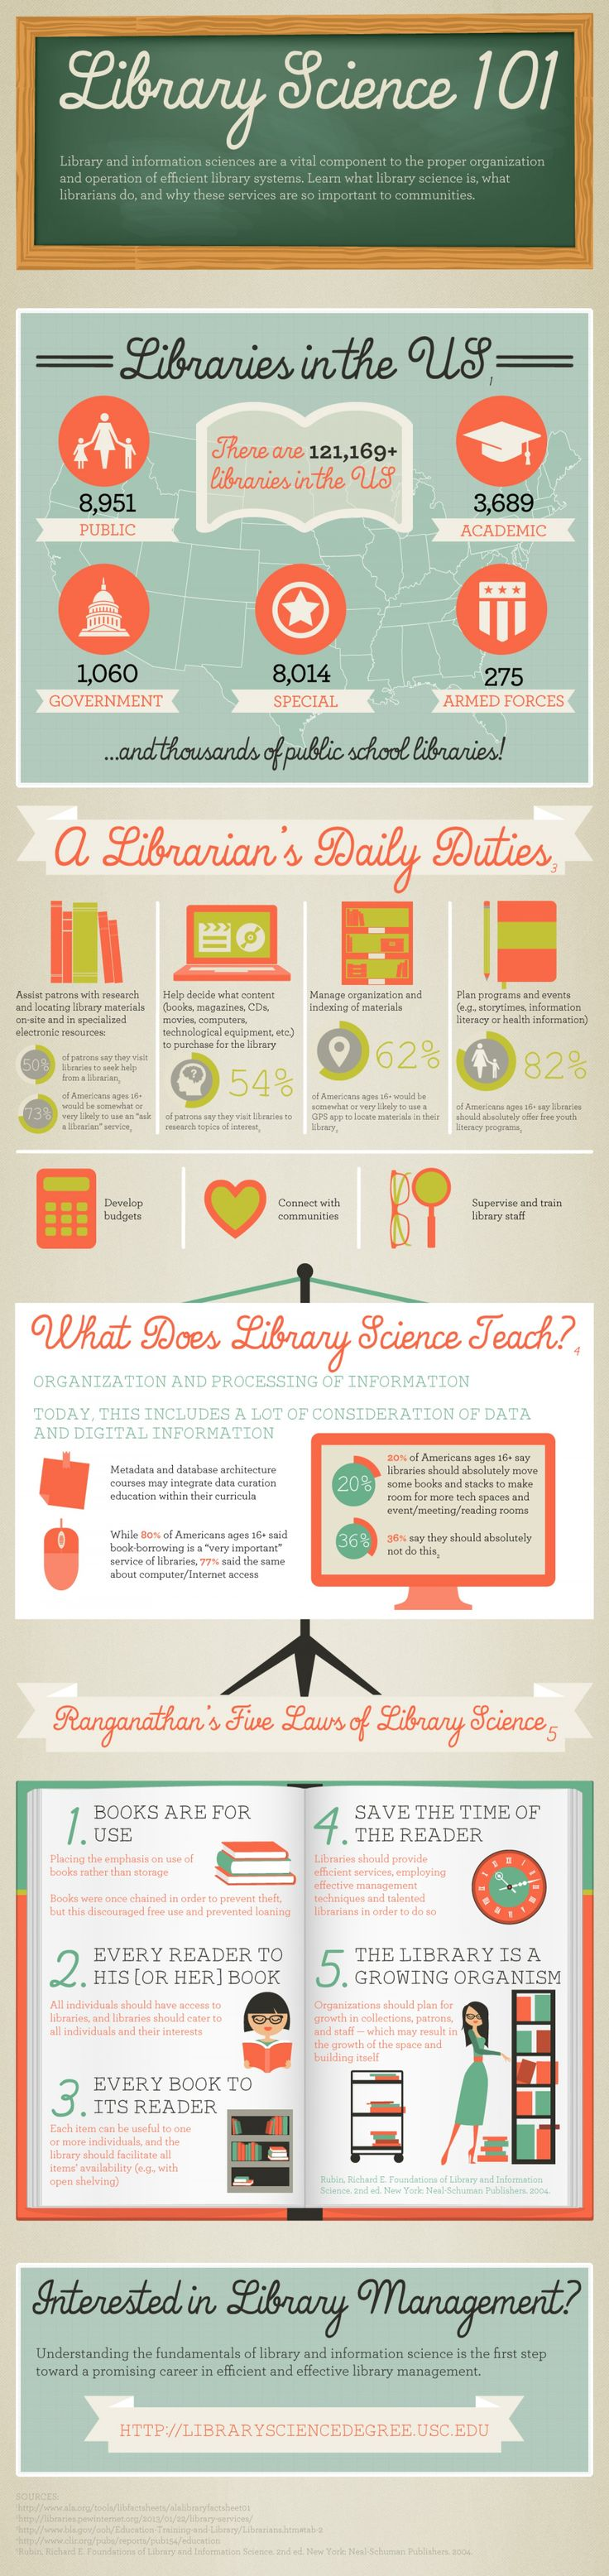 Library Science 101 Infographic.